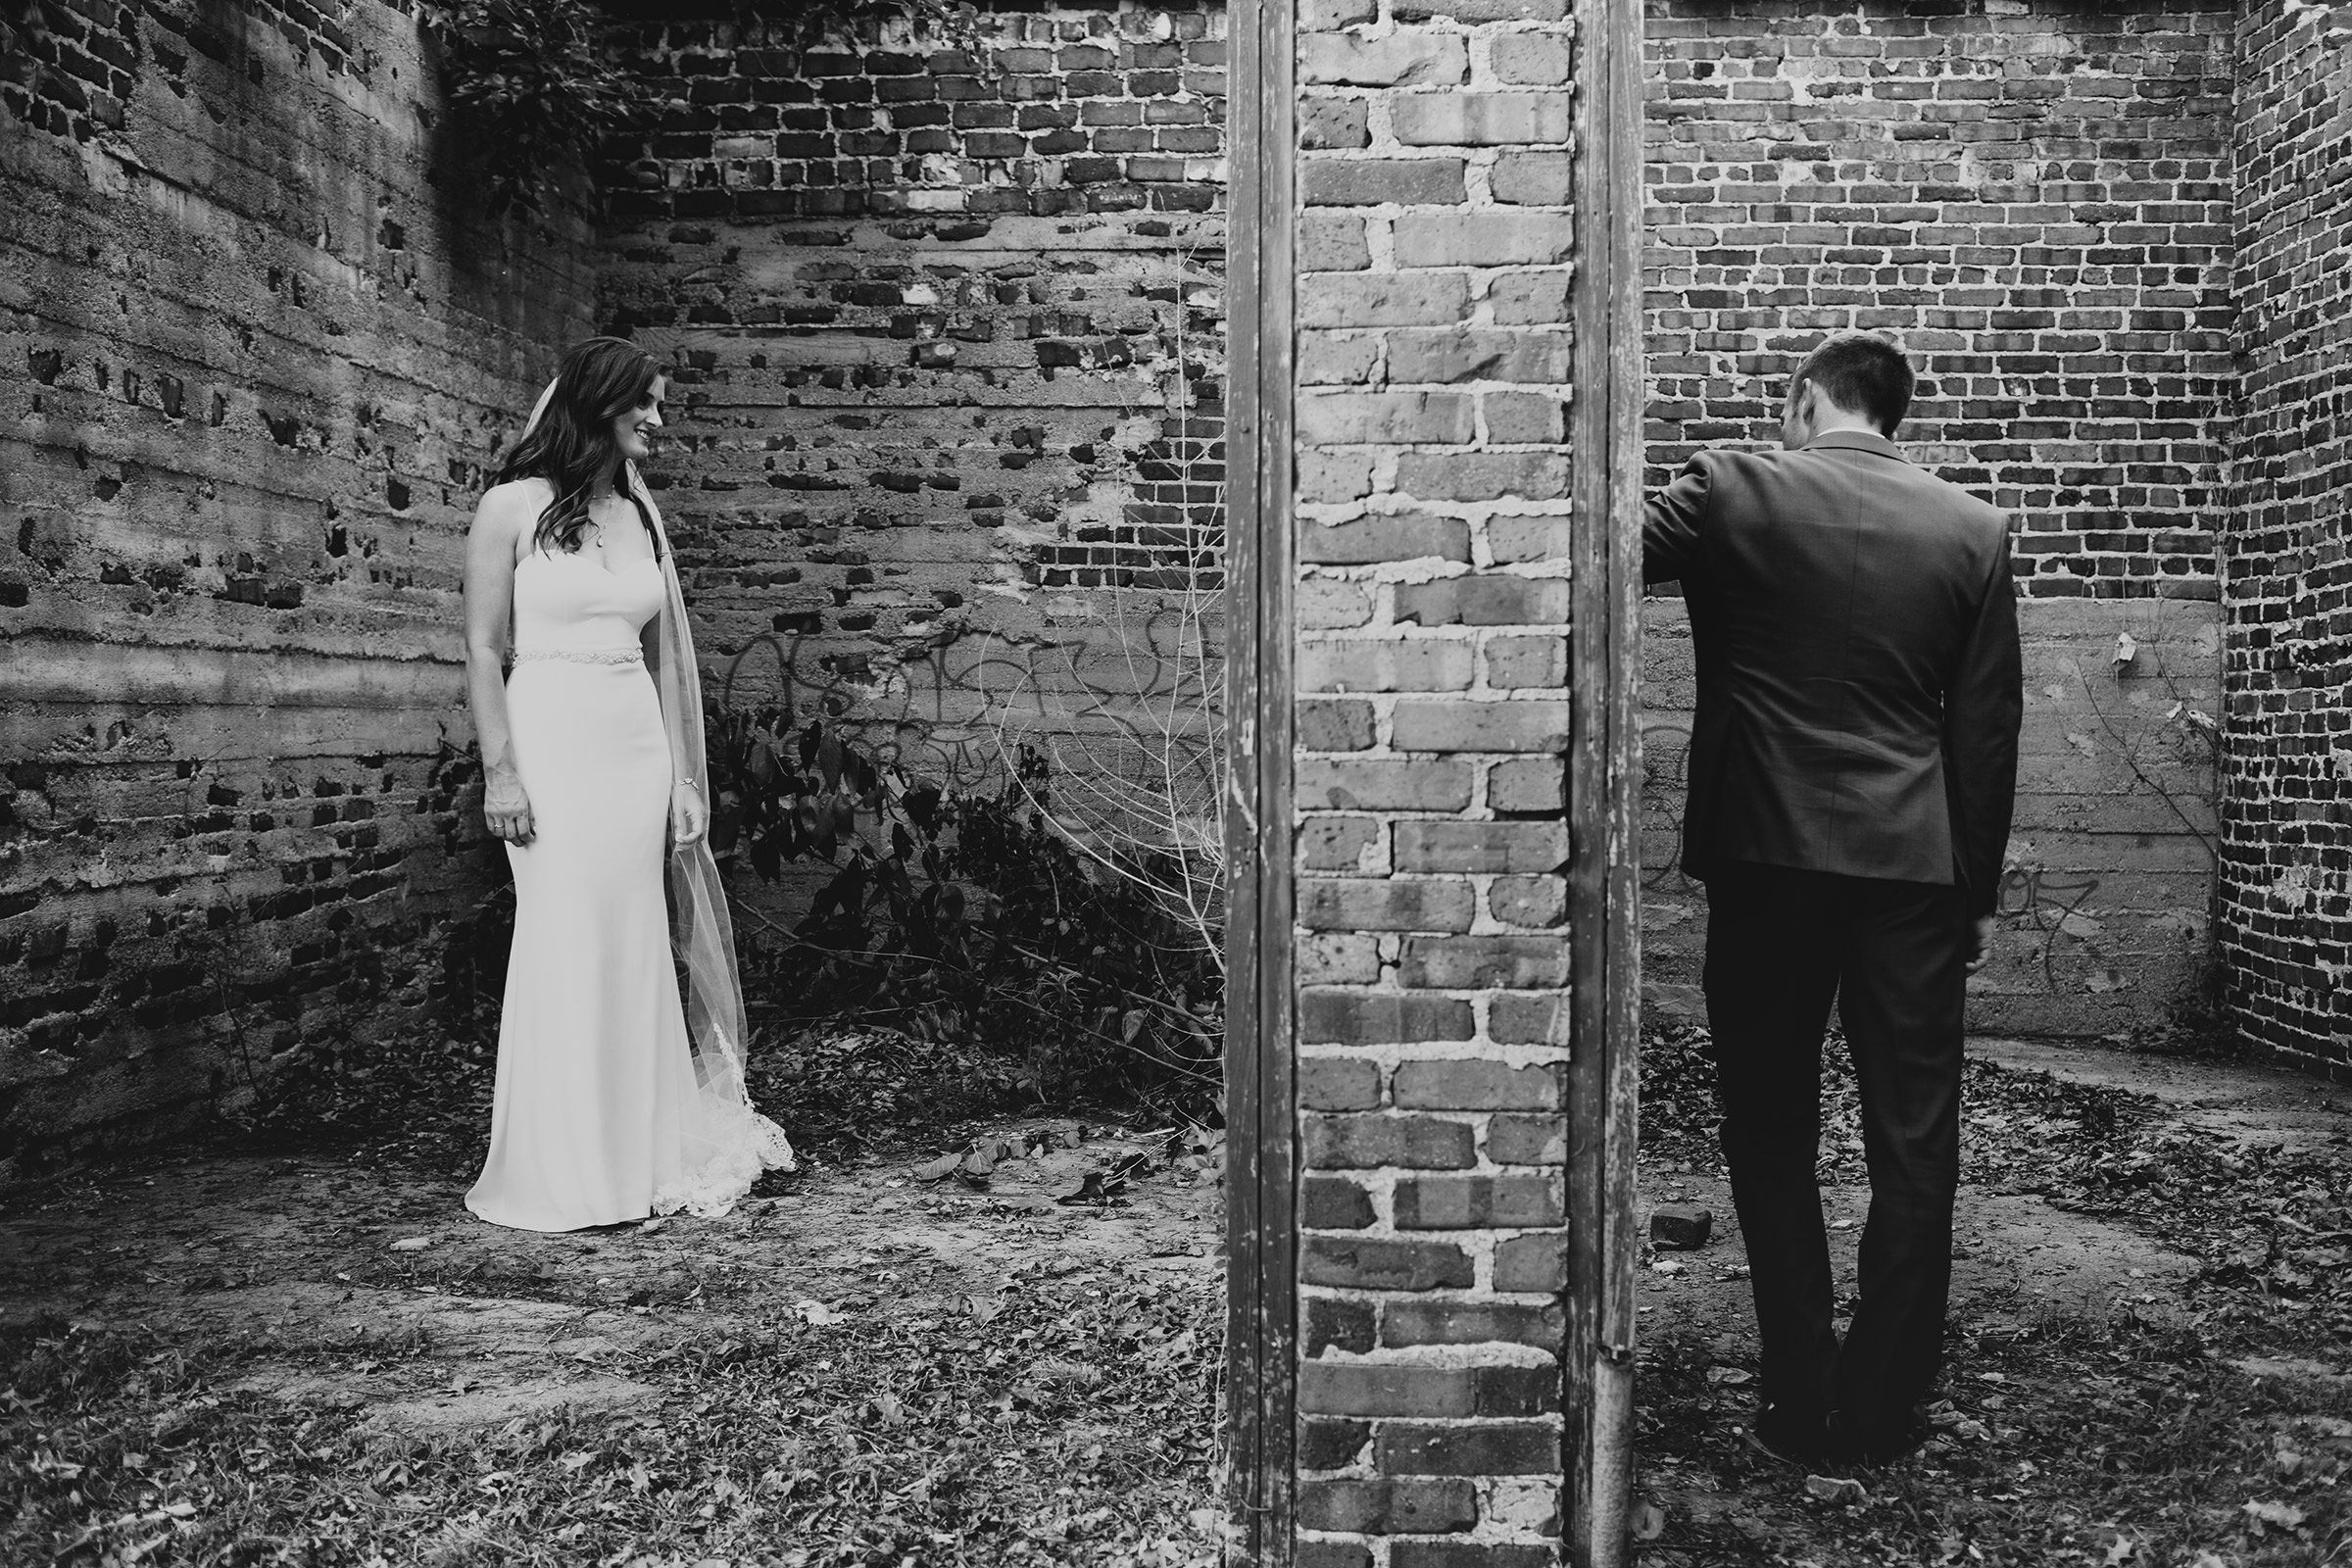 mr-mrs-hull-bride-and-groom-looking-at-eachother-desmoines-iowa-raelyn-ramey-photography-452.jpg